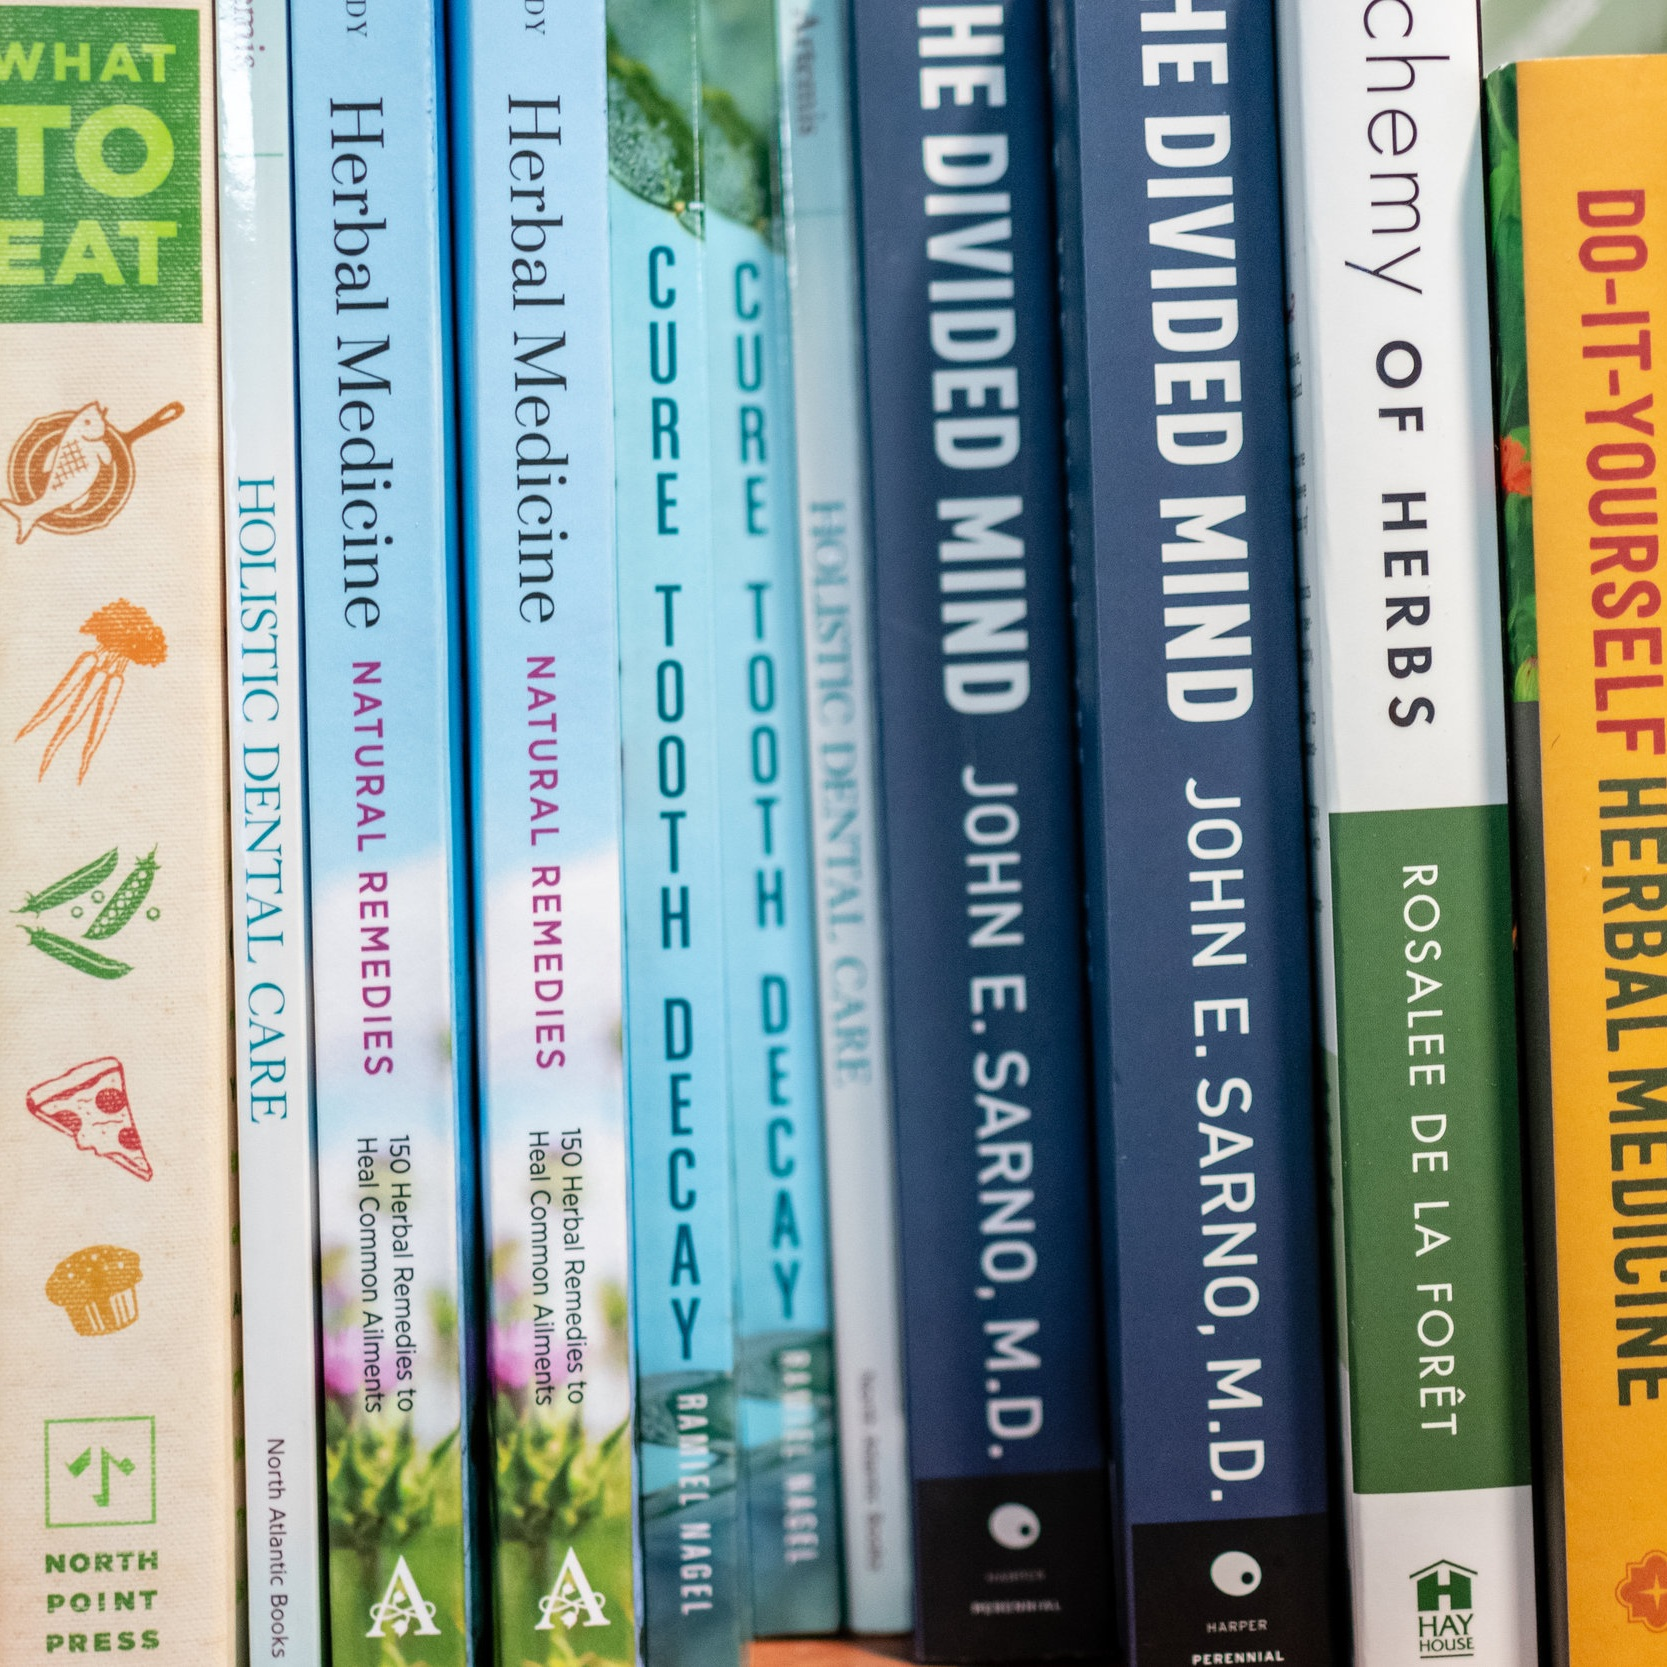 Each Total Health Dental Care Office has a lending library so patients can check out books on Herbal Medicine and Nutrition.